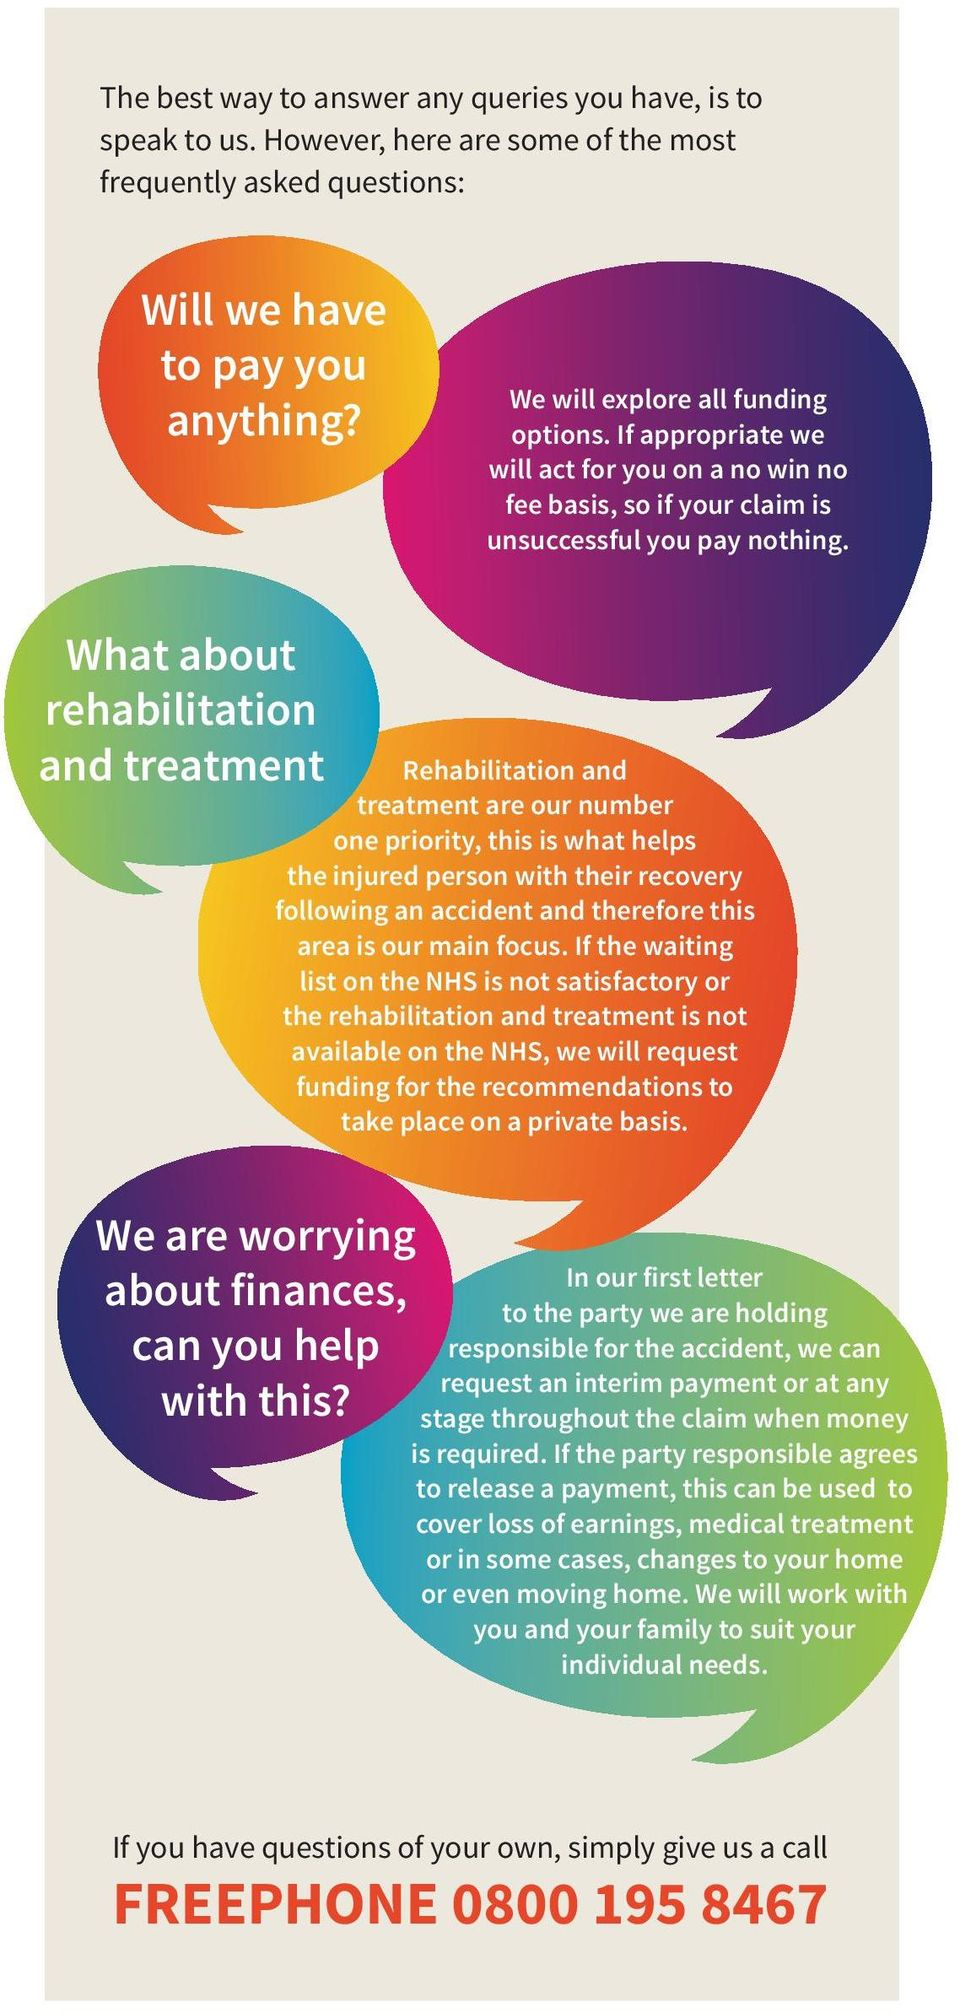 What about rehabilitation and treatment We are worrying about finances, can you help with this?